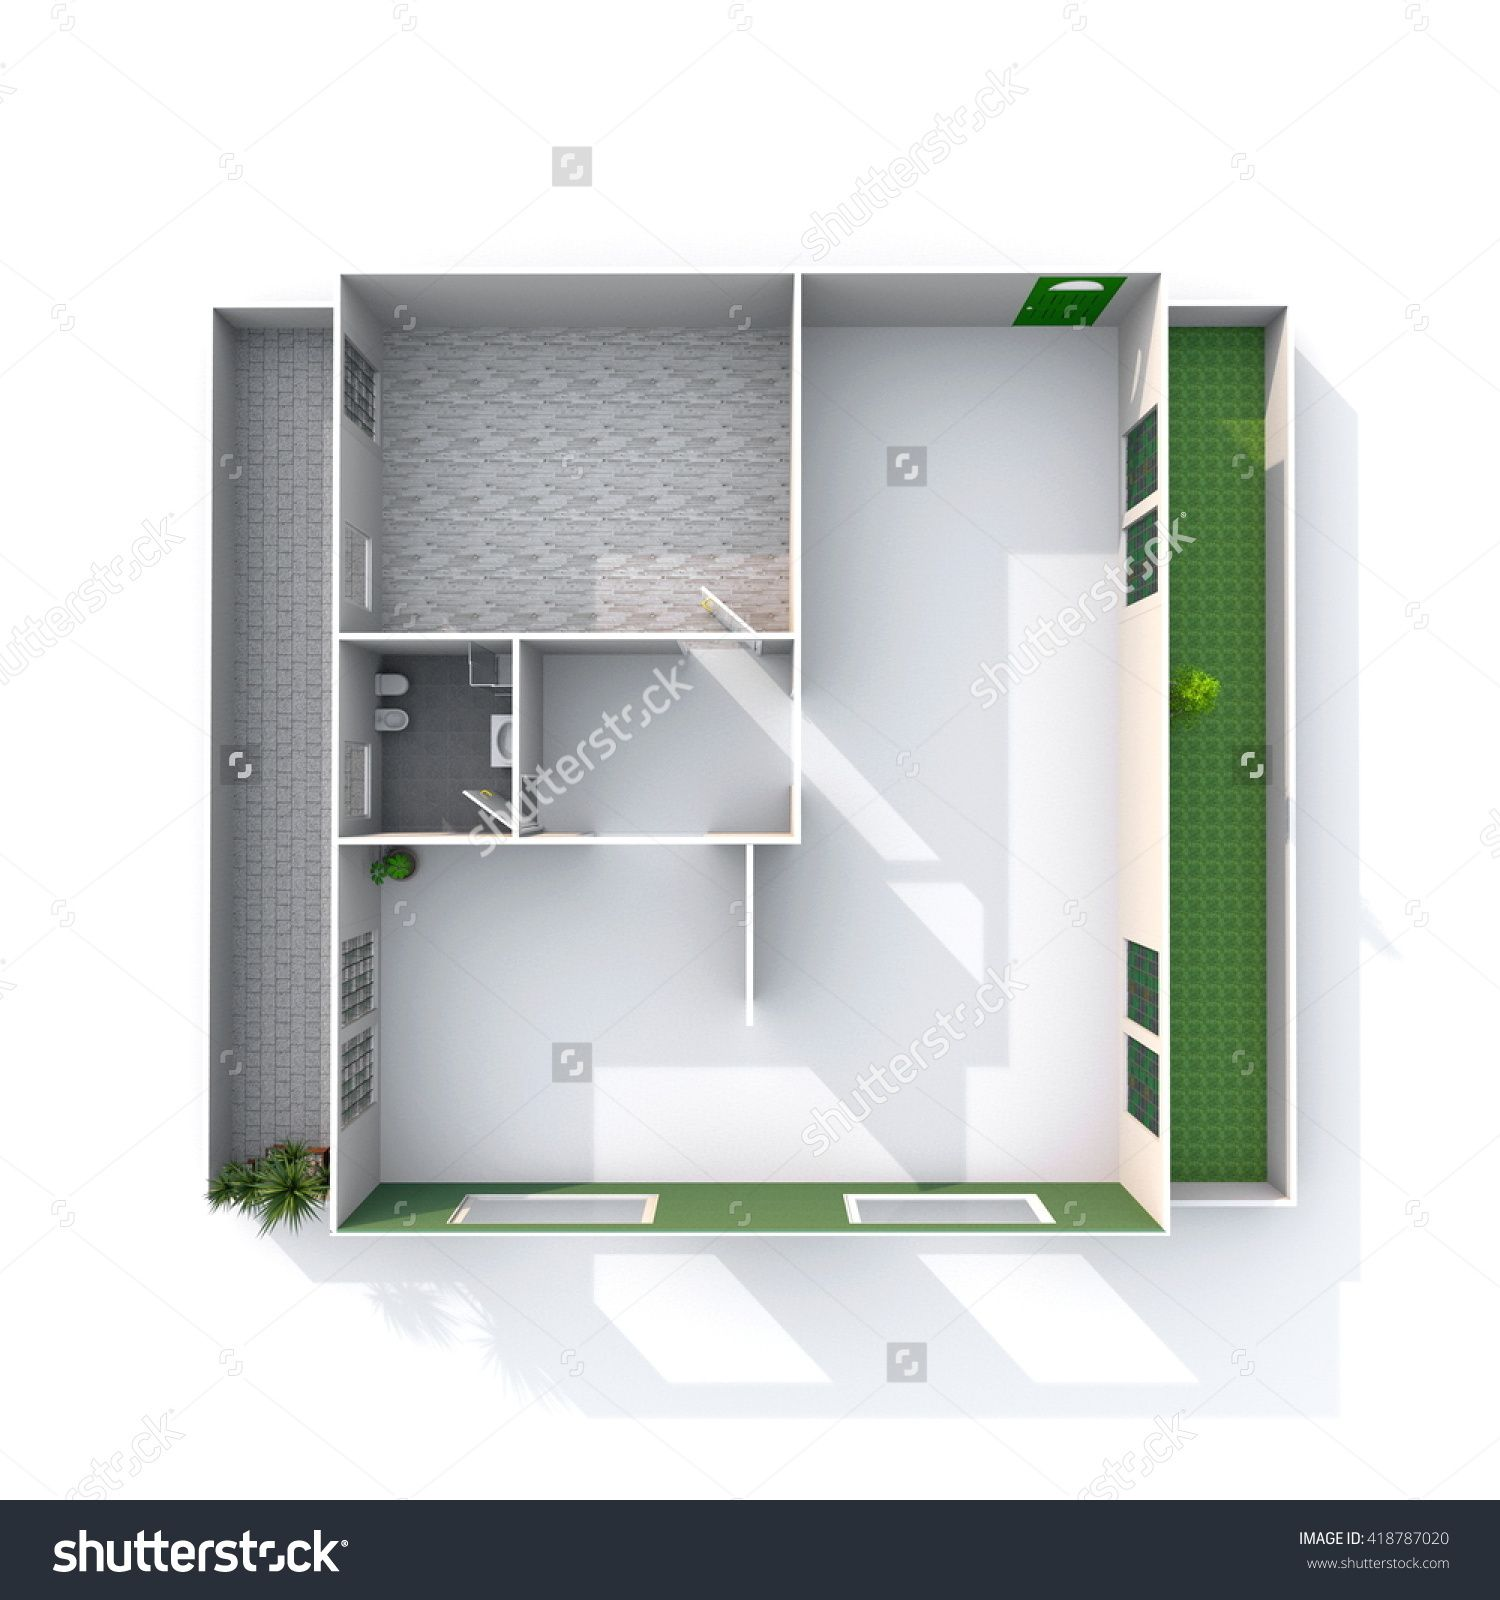 3d interior rendering of empty architectural paper model home